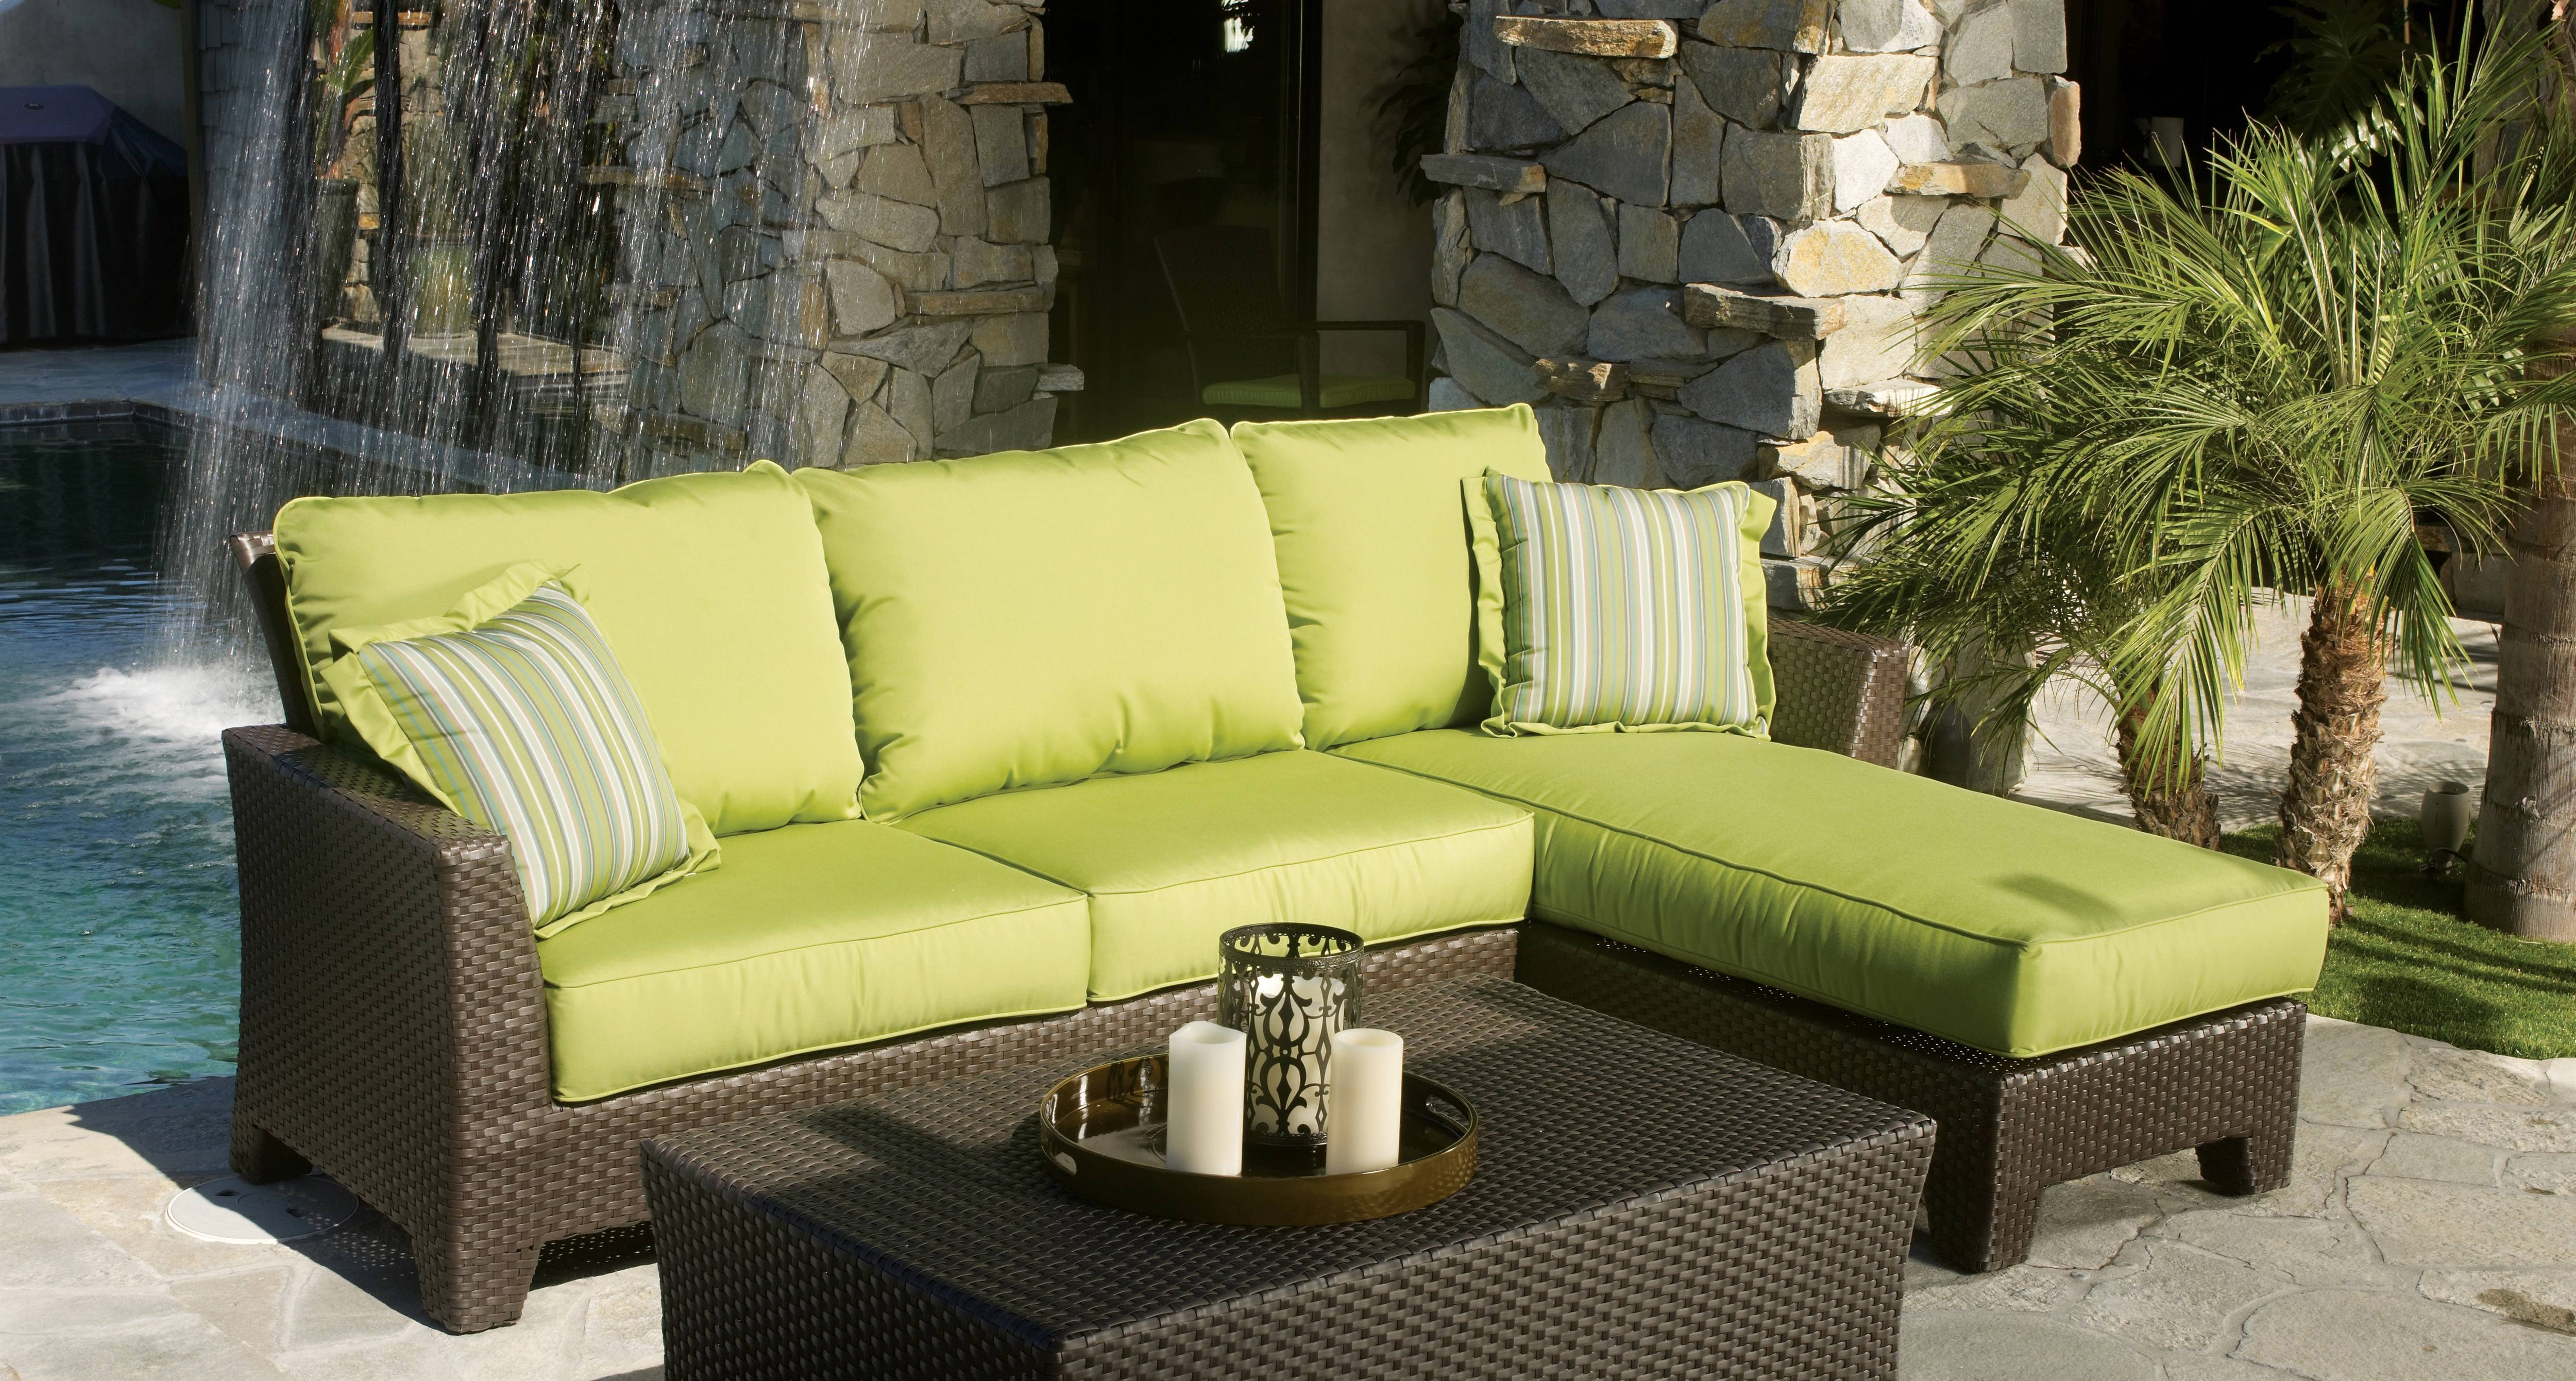 2017 Clearance Sectional Sofas Throughout Feel The Grace Of Your Interior With Long Sectional Sofa Clearance (View 7 of 15)